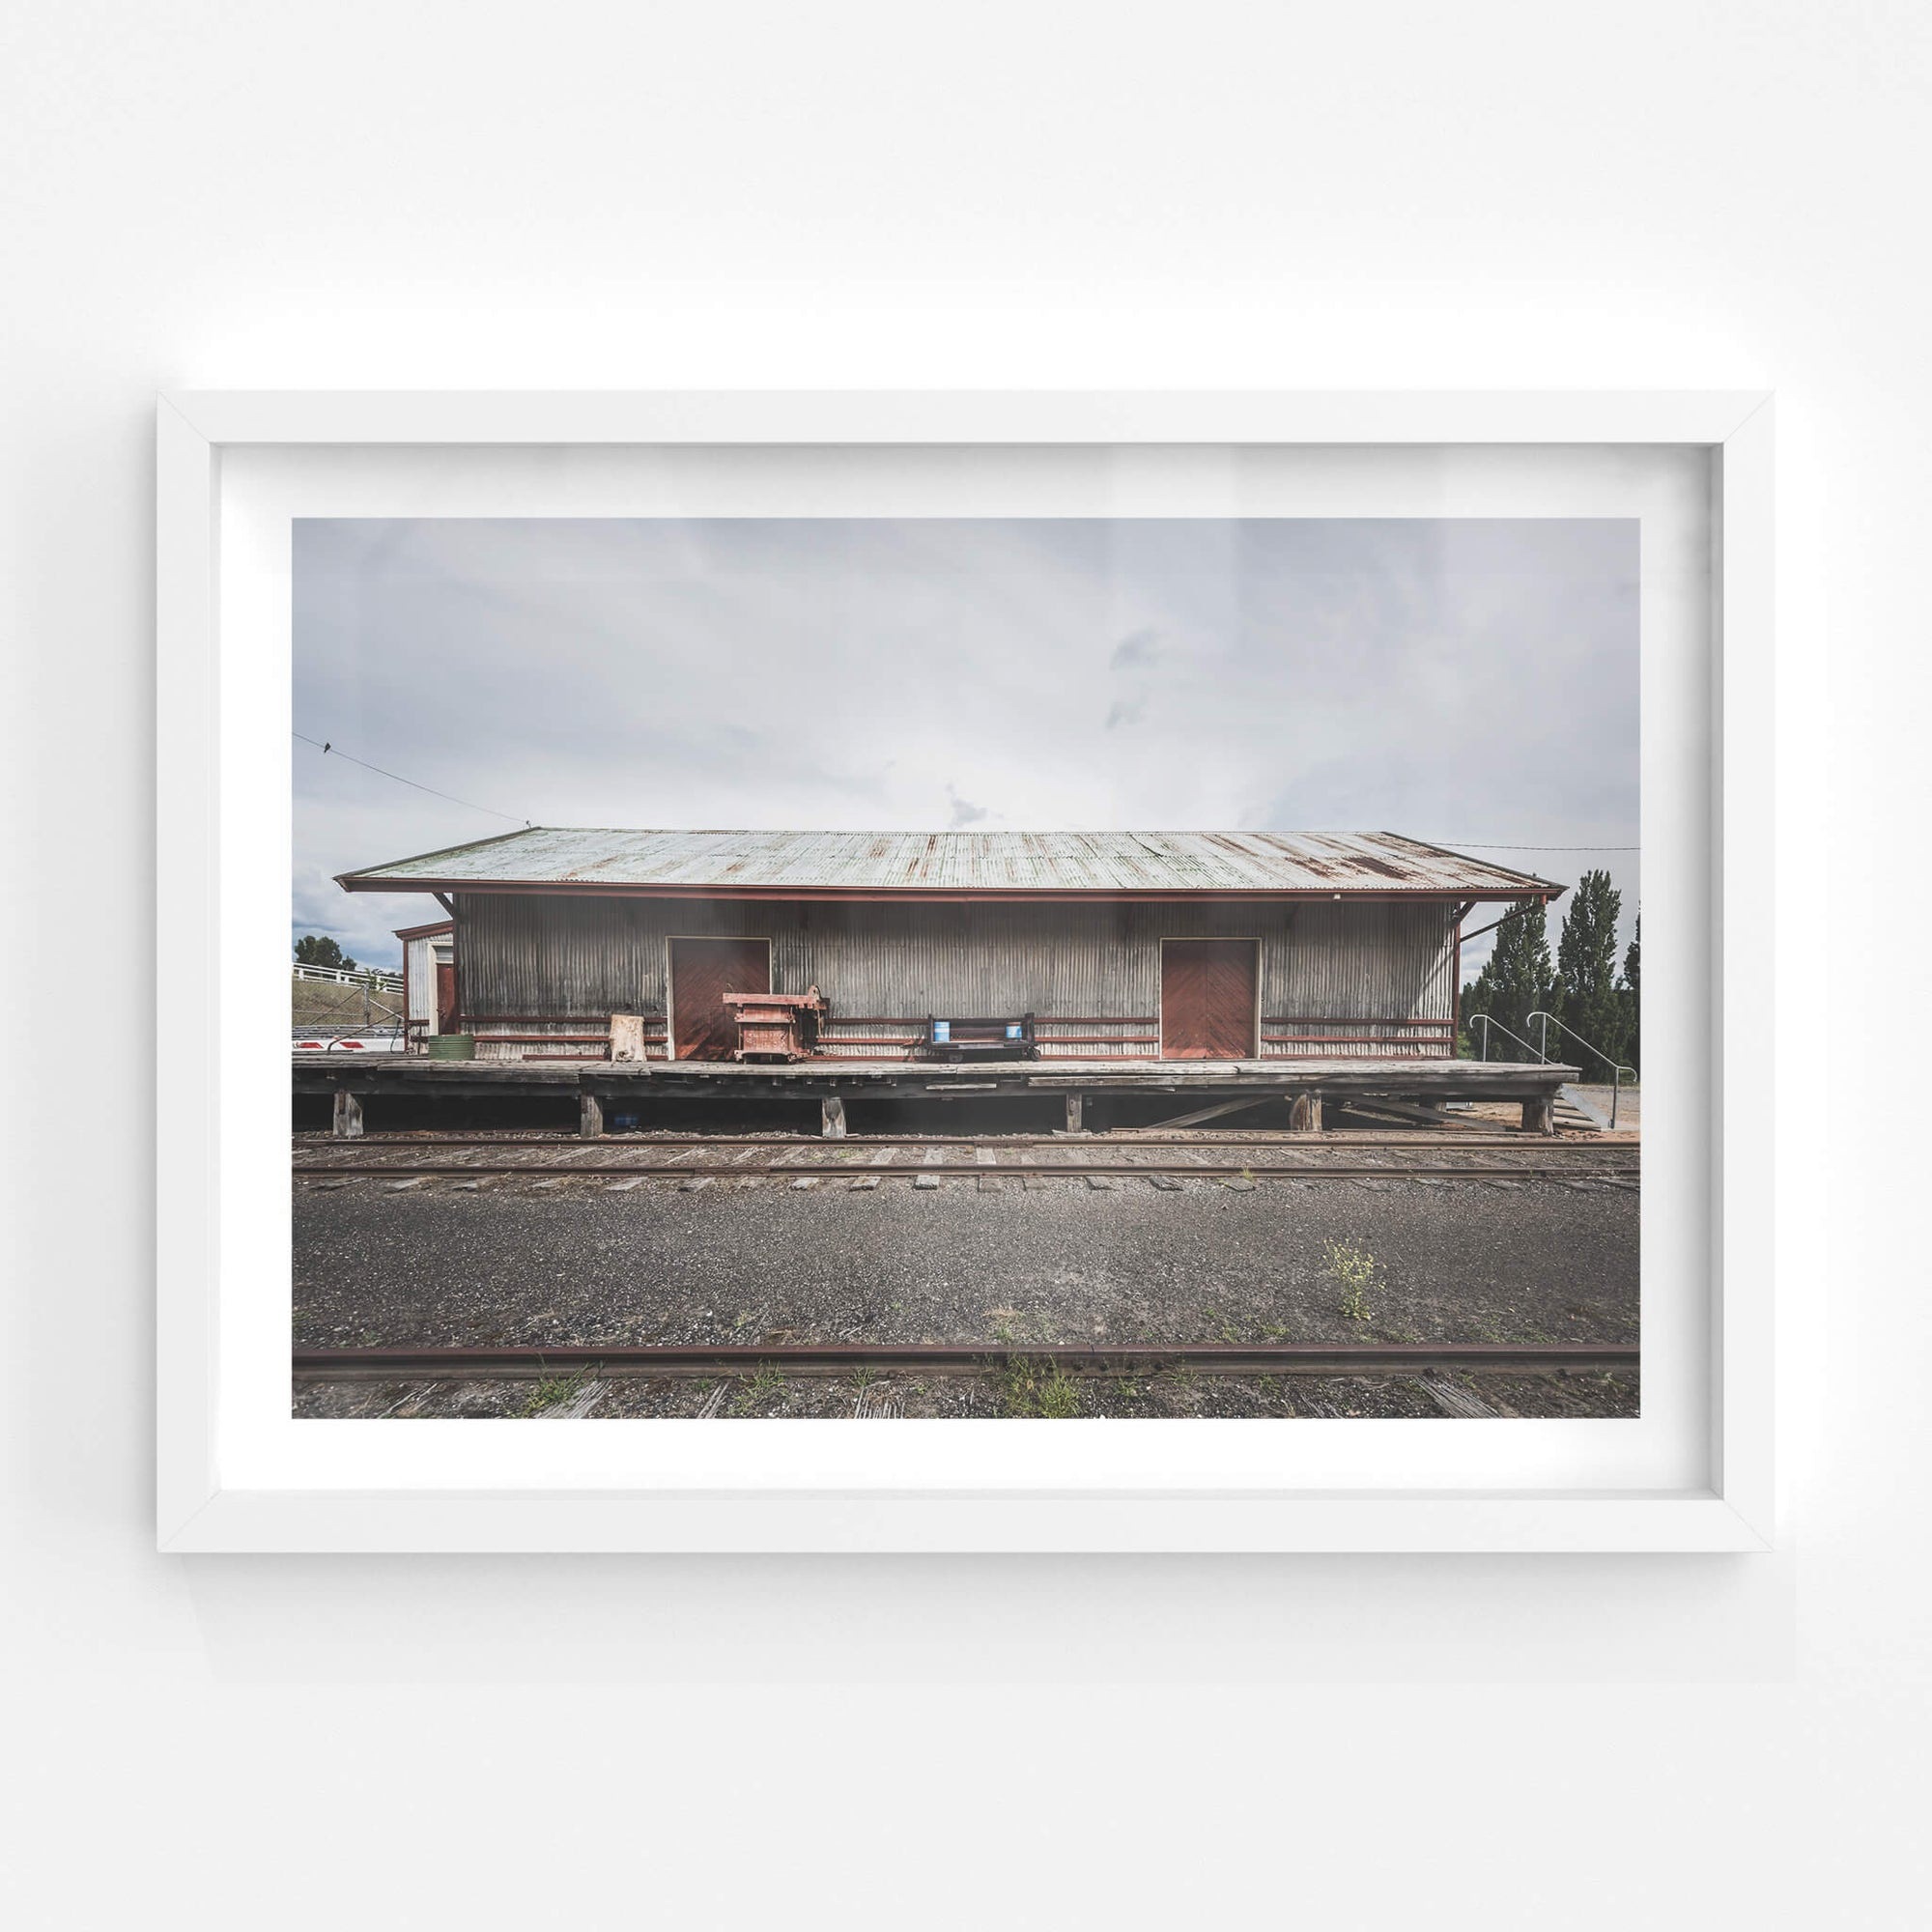 Goods Shed | Bombala Station Fine Art Print - Lost Collective Shop